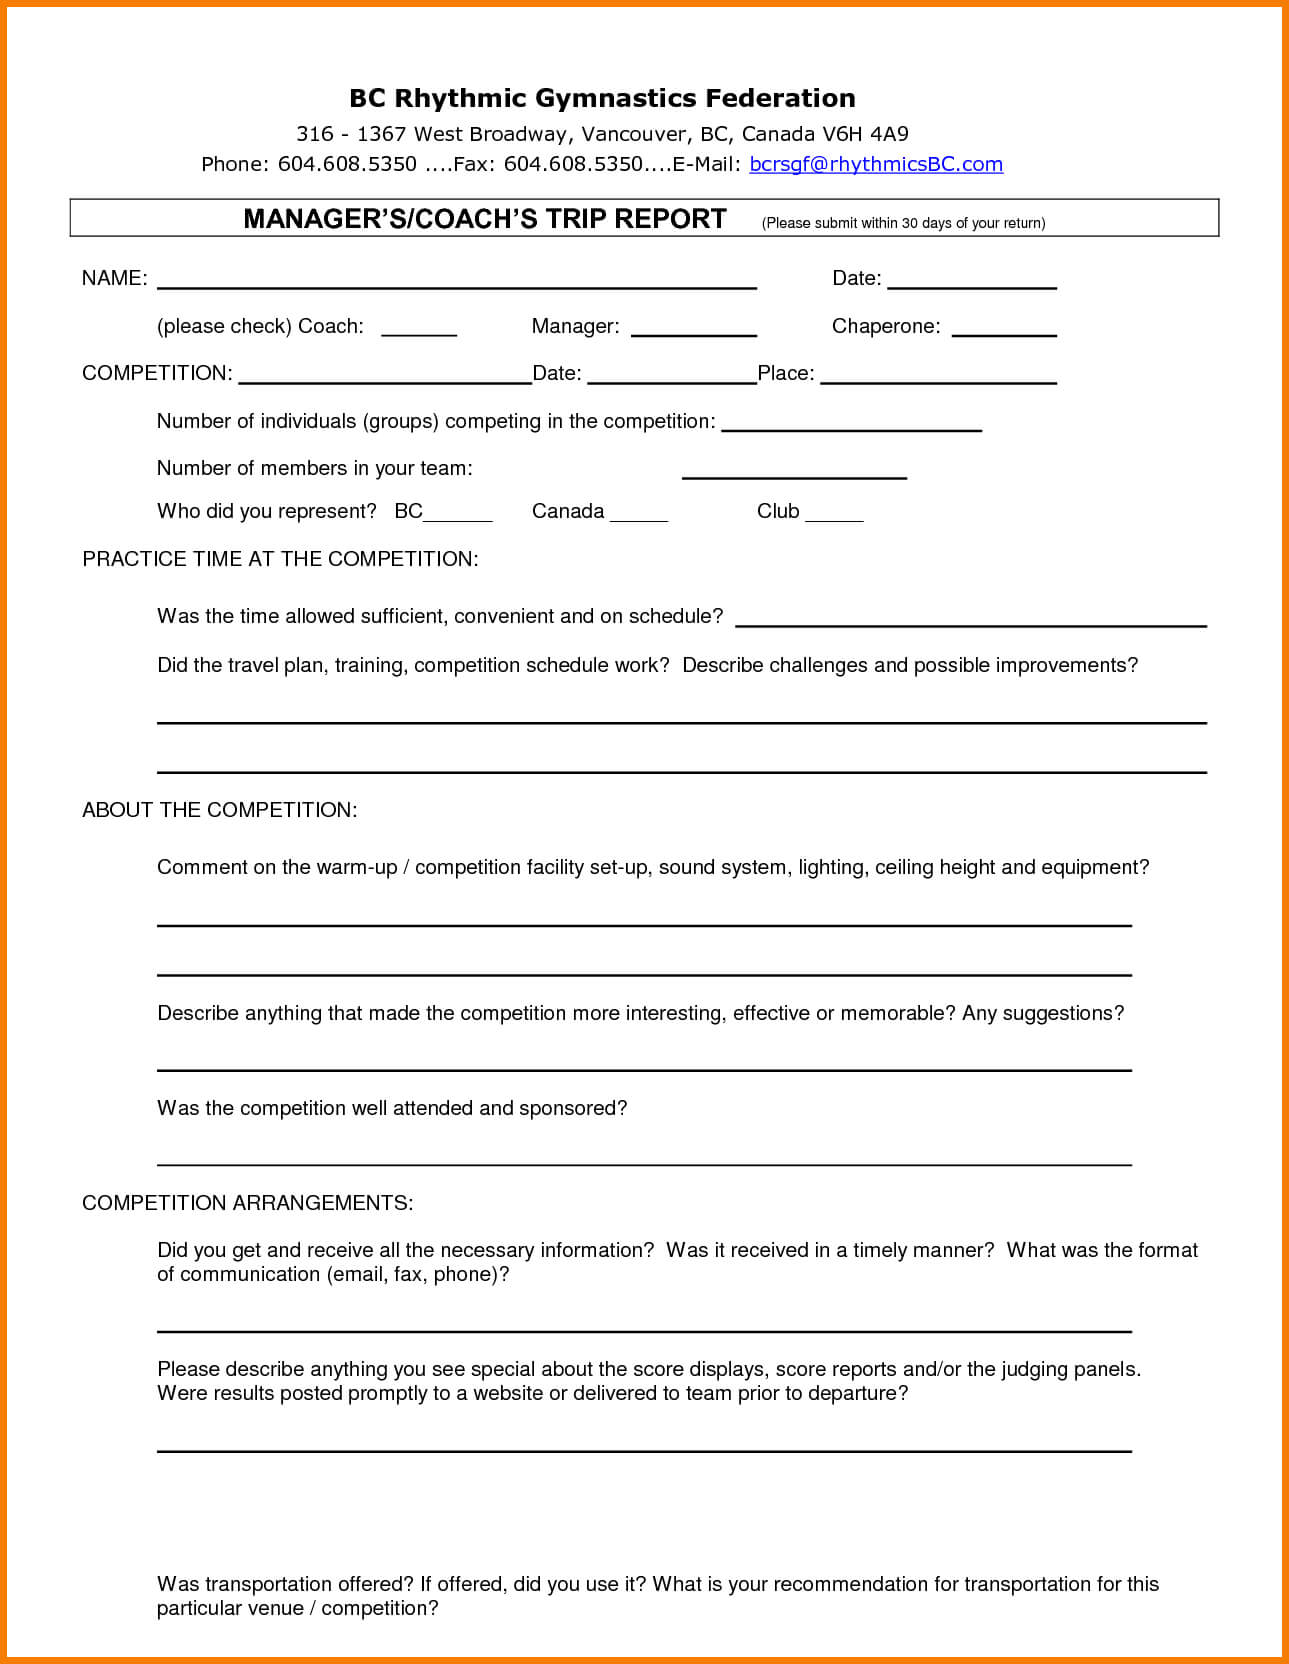 Trip Report Template The Worst Advices We've Heard For With Business Trip Report Template